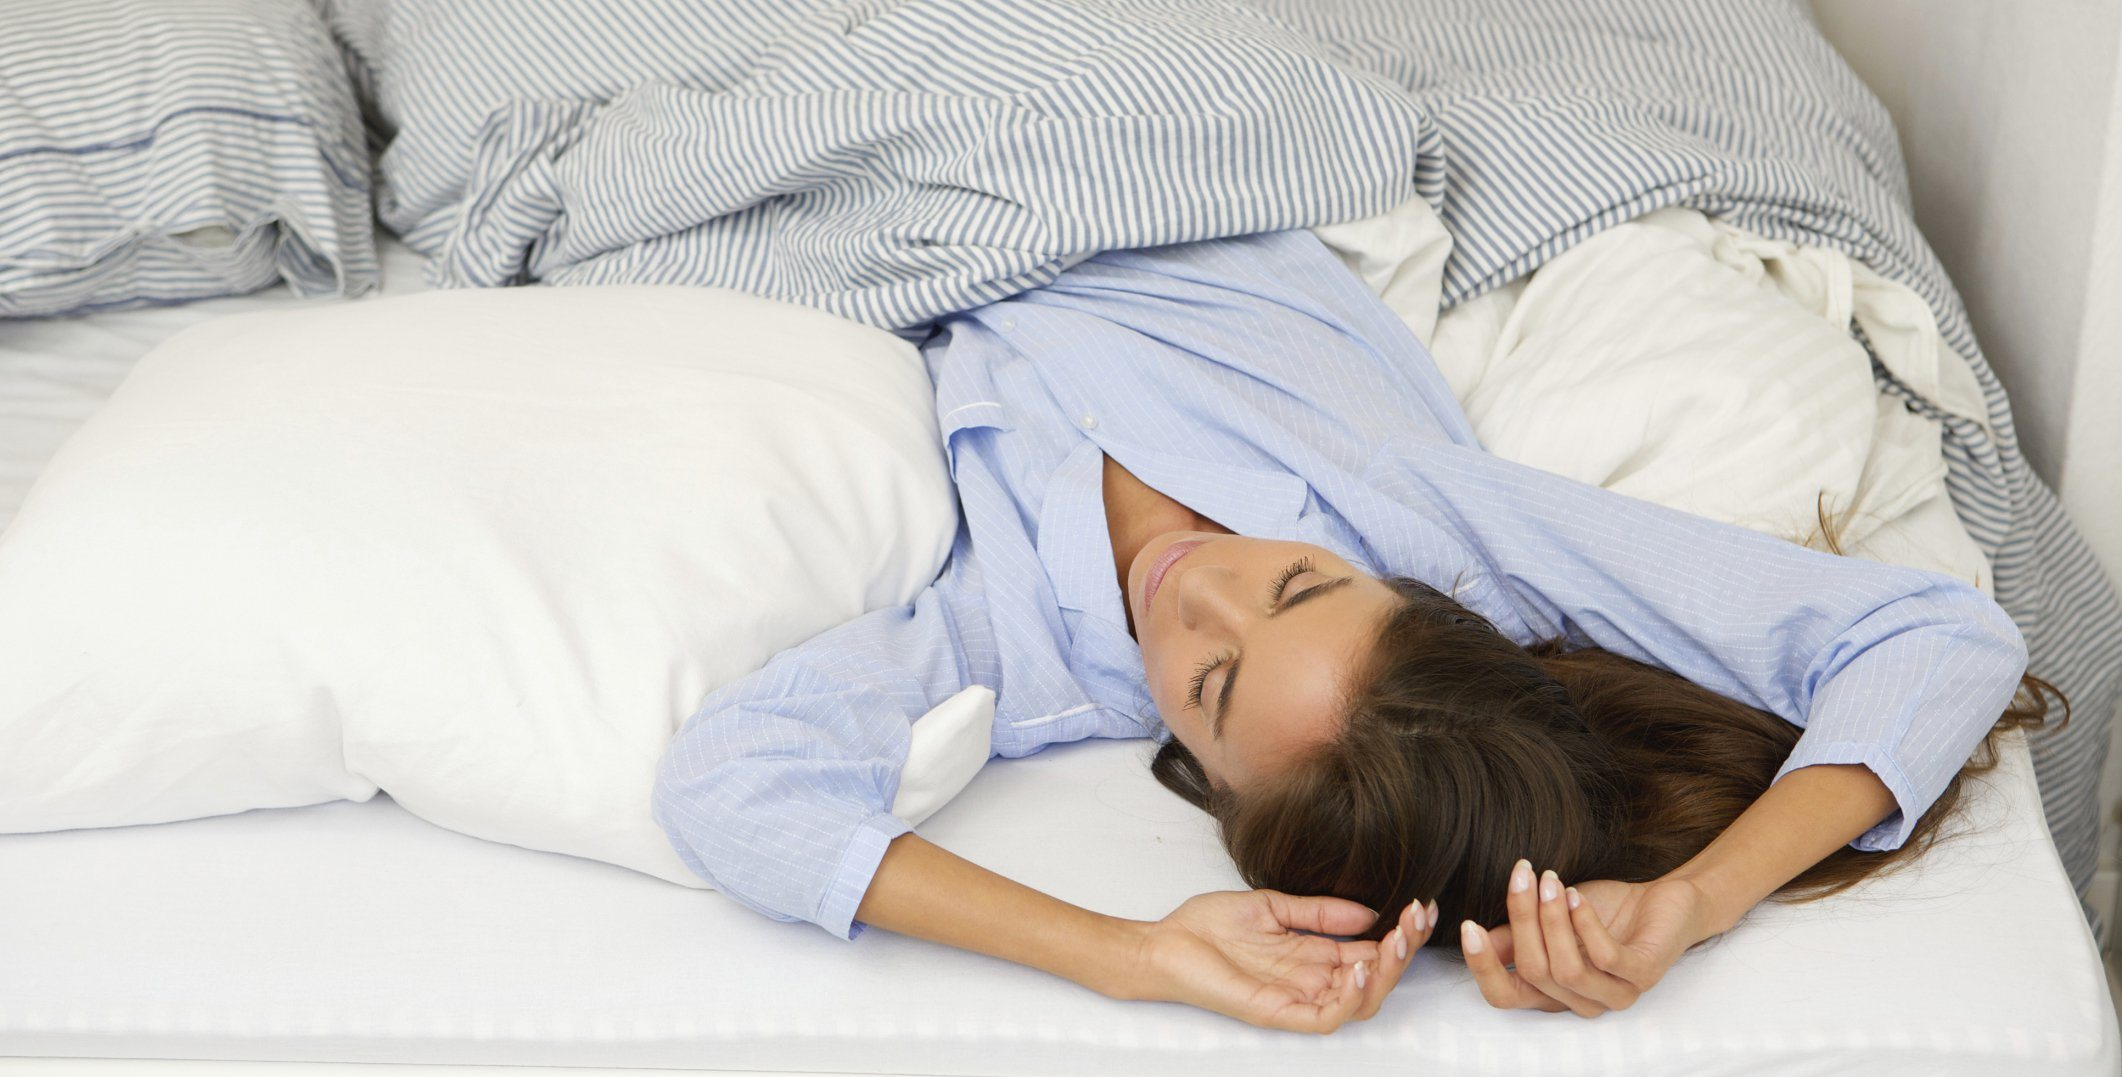 woman-sleeping-bed-back